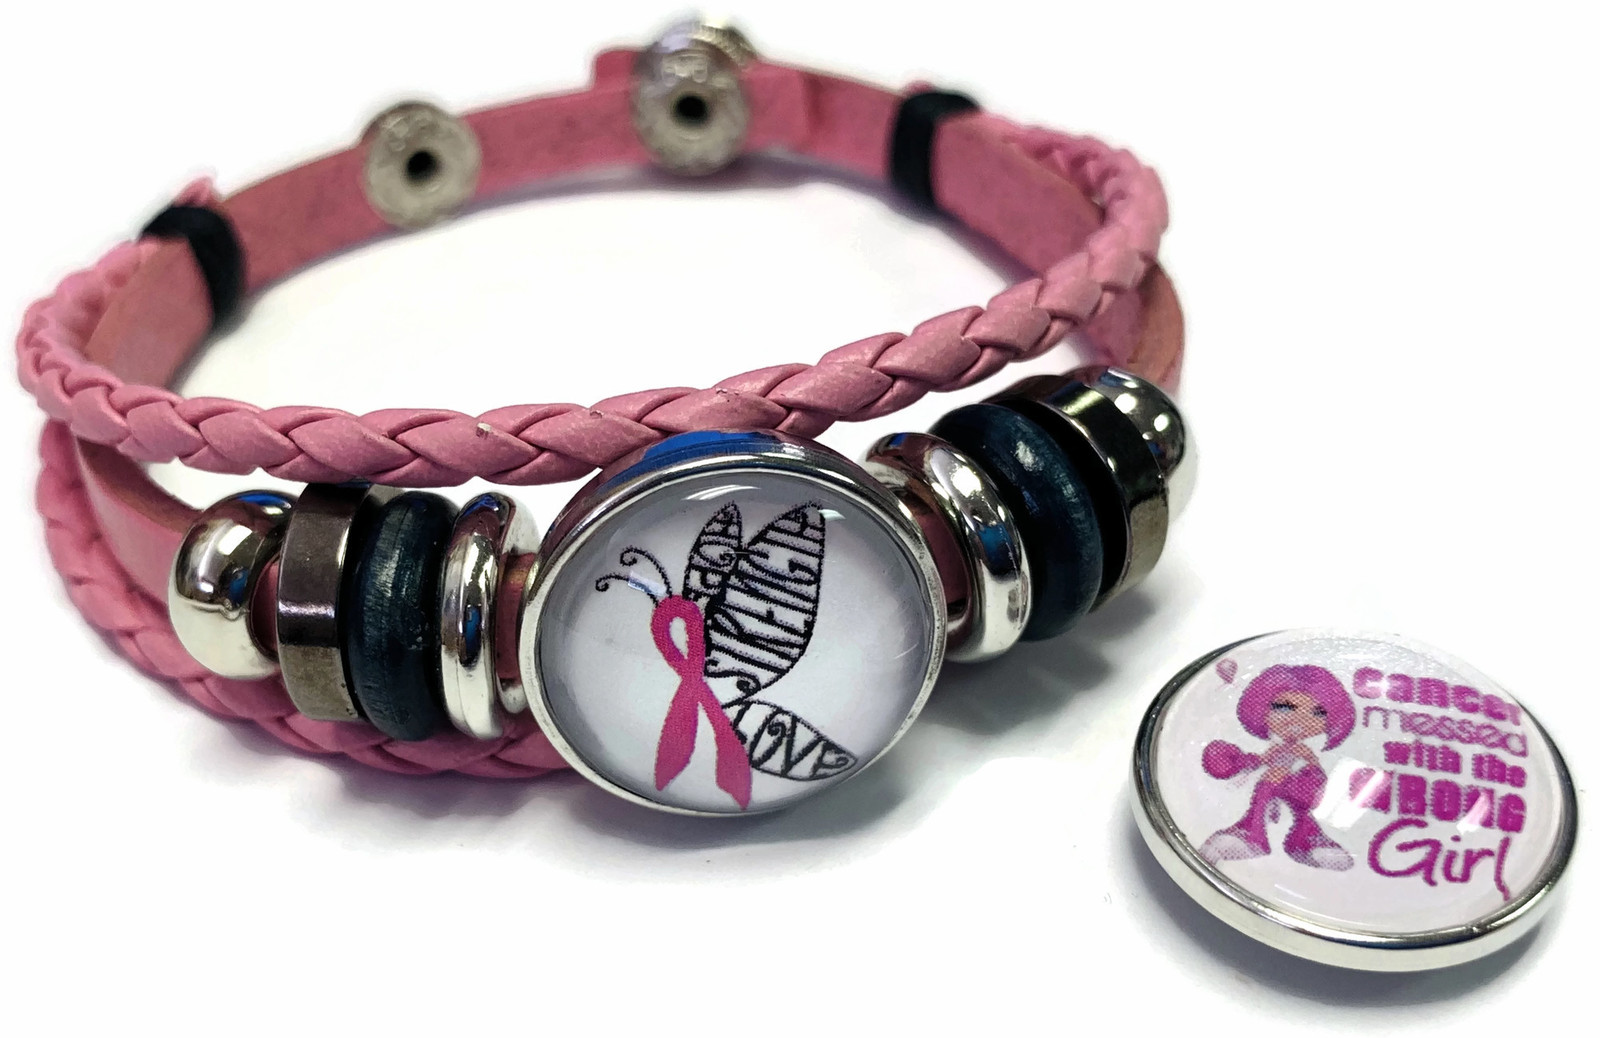 Breast Cancer Wrong Girl Butterfly Pink Leather Bracelet W/2 Snap Jewelry Charms